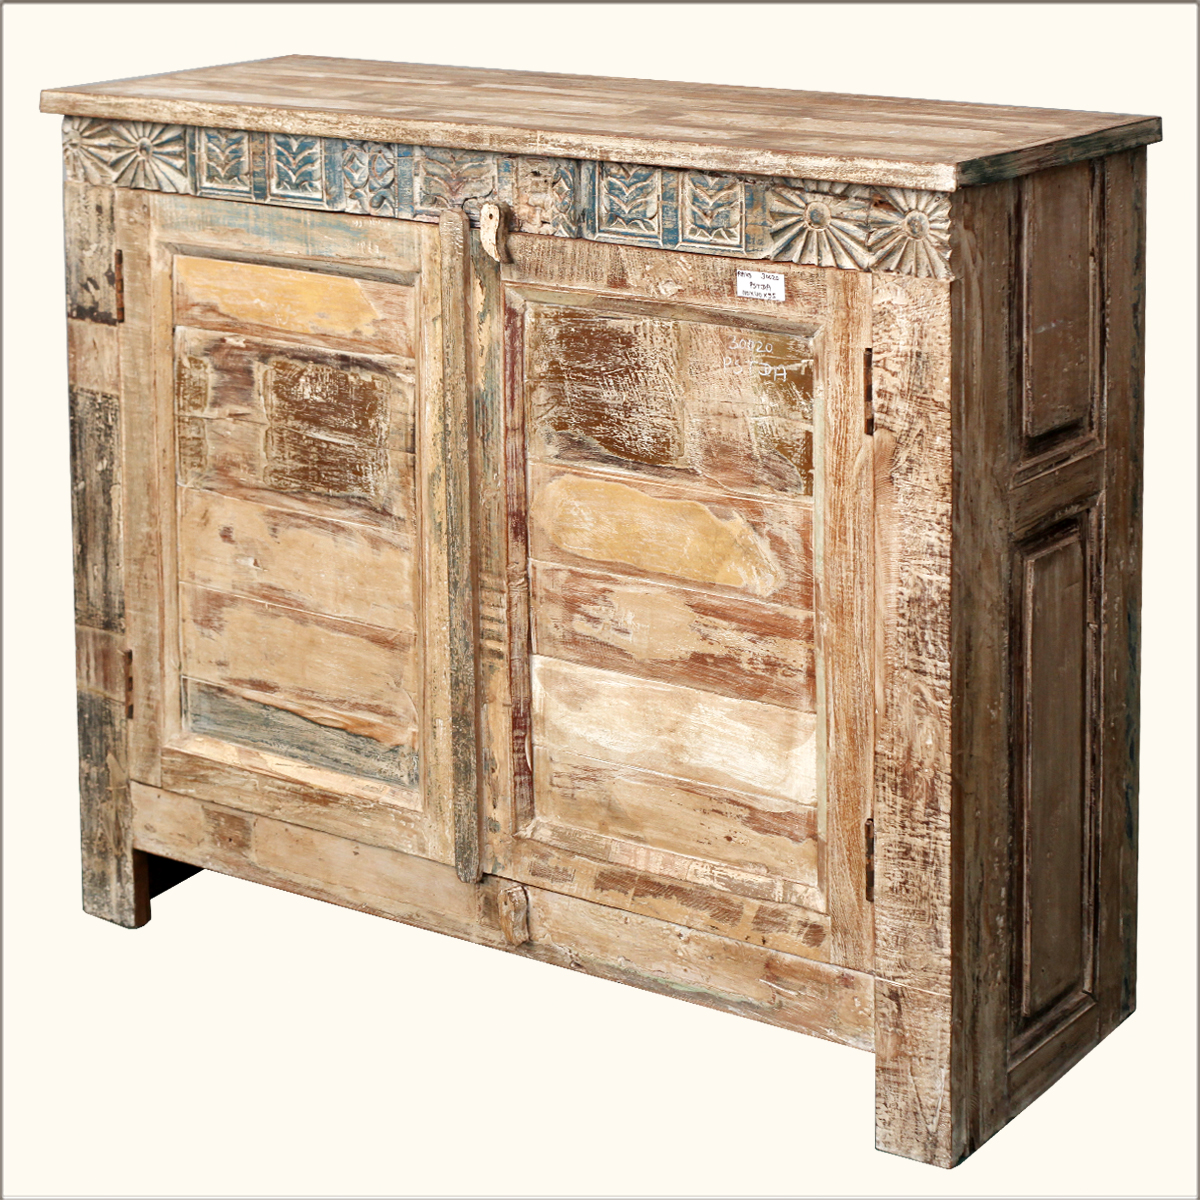 Rustic reclaimed storage cabinet wood distressed sideboard